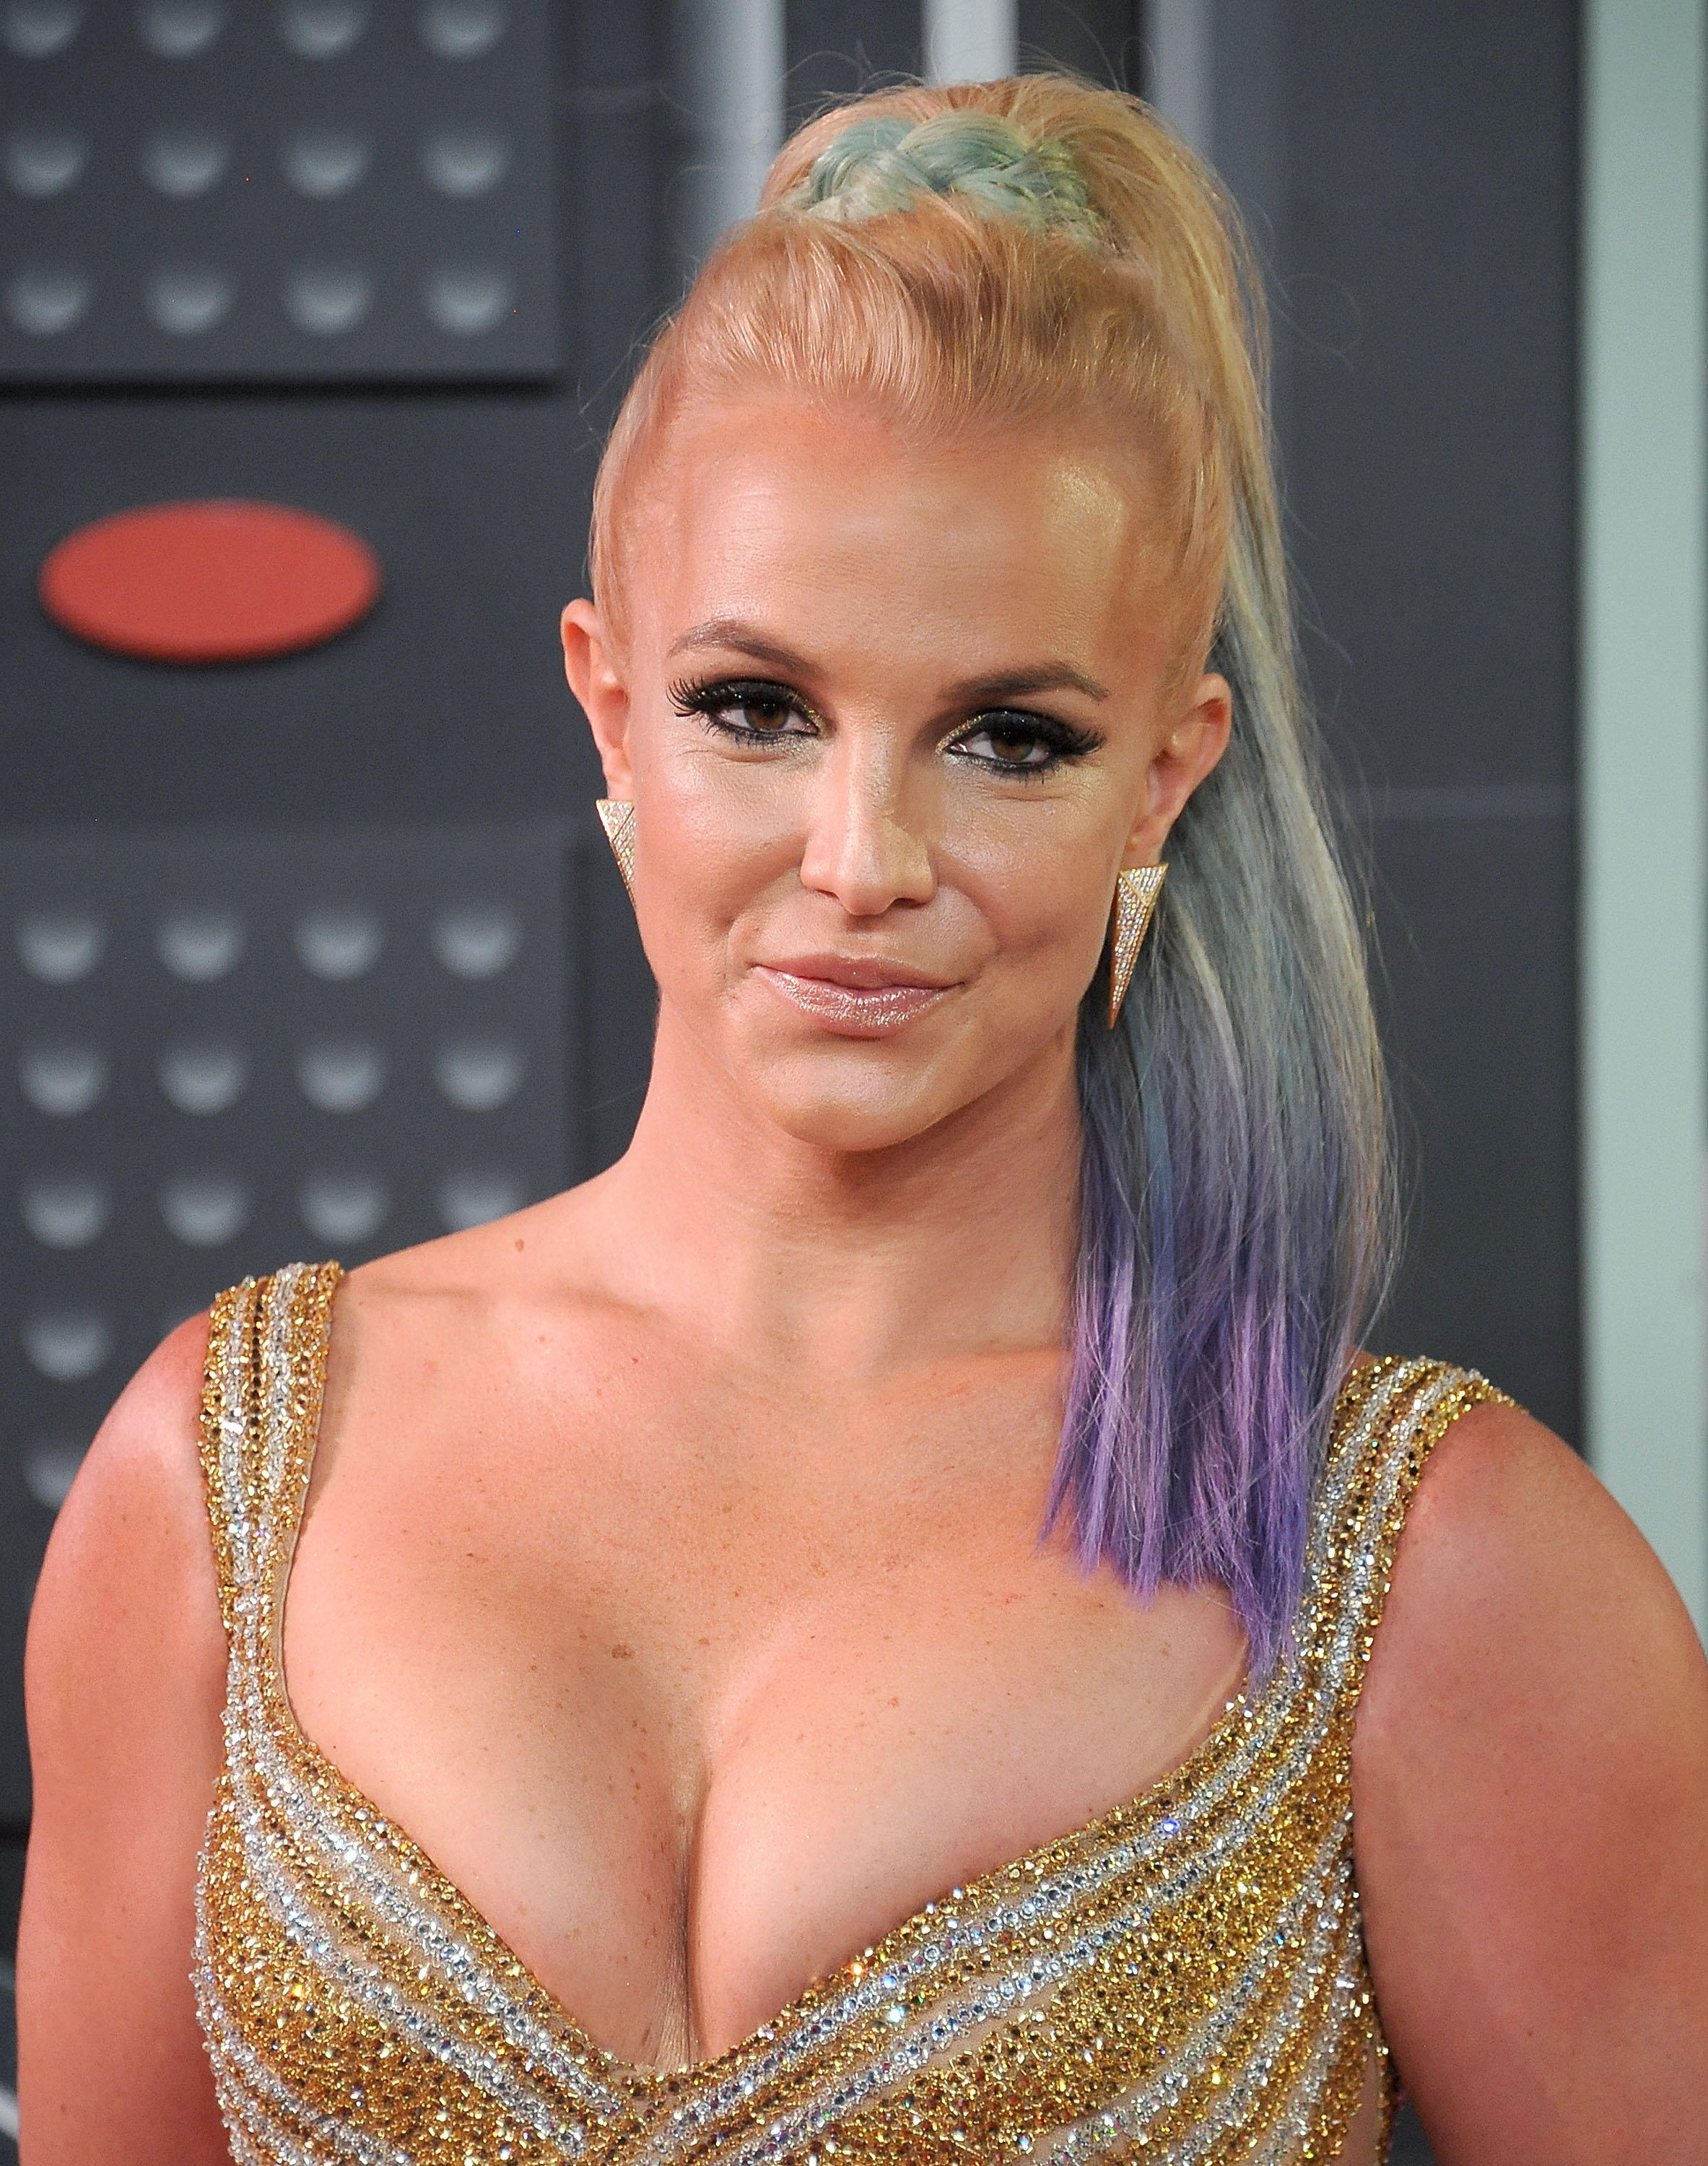 <p>LOS ANGELES, CA - AUGUST 30: Singer Britney Spears arrives at the 2015 MTV Video Music Awards at Microsoft Theater on August 30, 2015 in Los Angeles, California. (Photo by Gregg DeGuire/WireImage)</p>